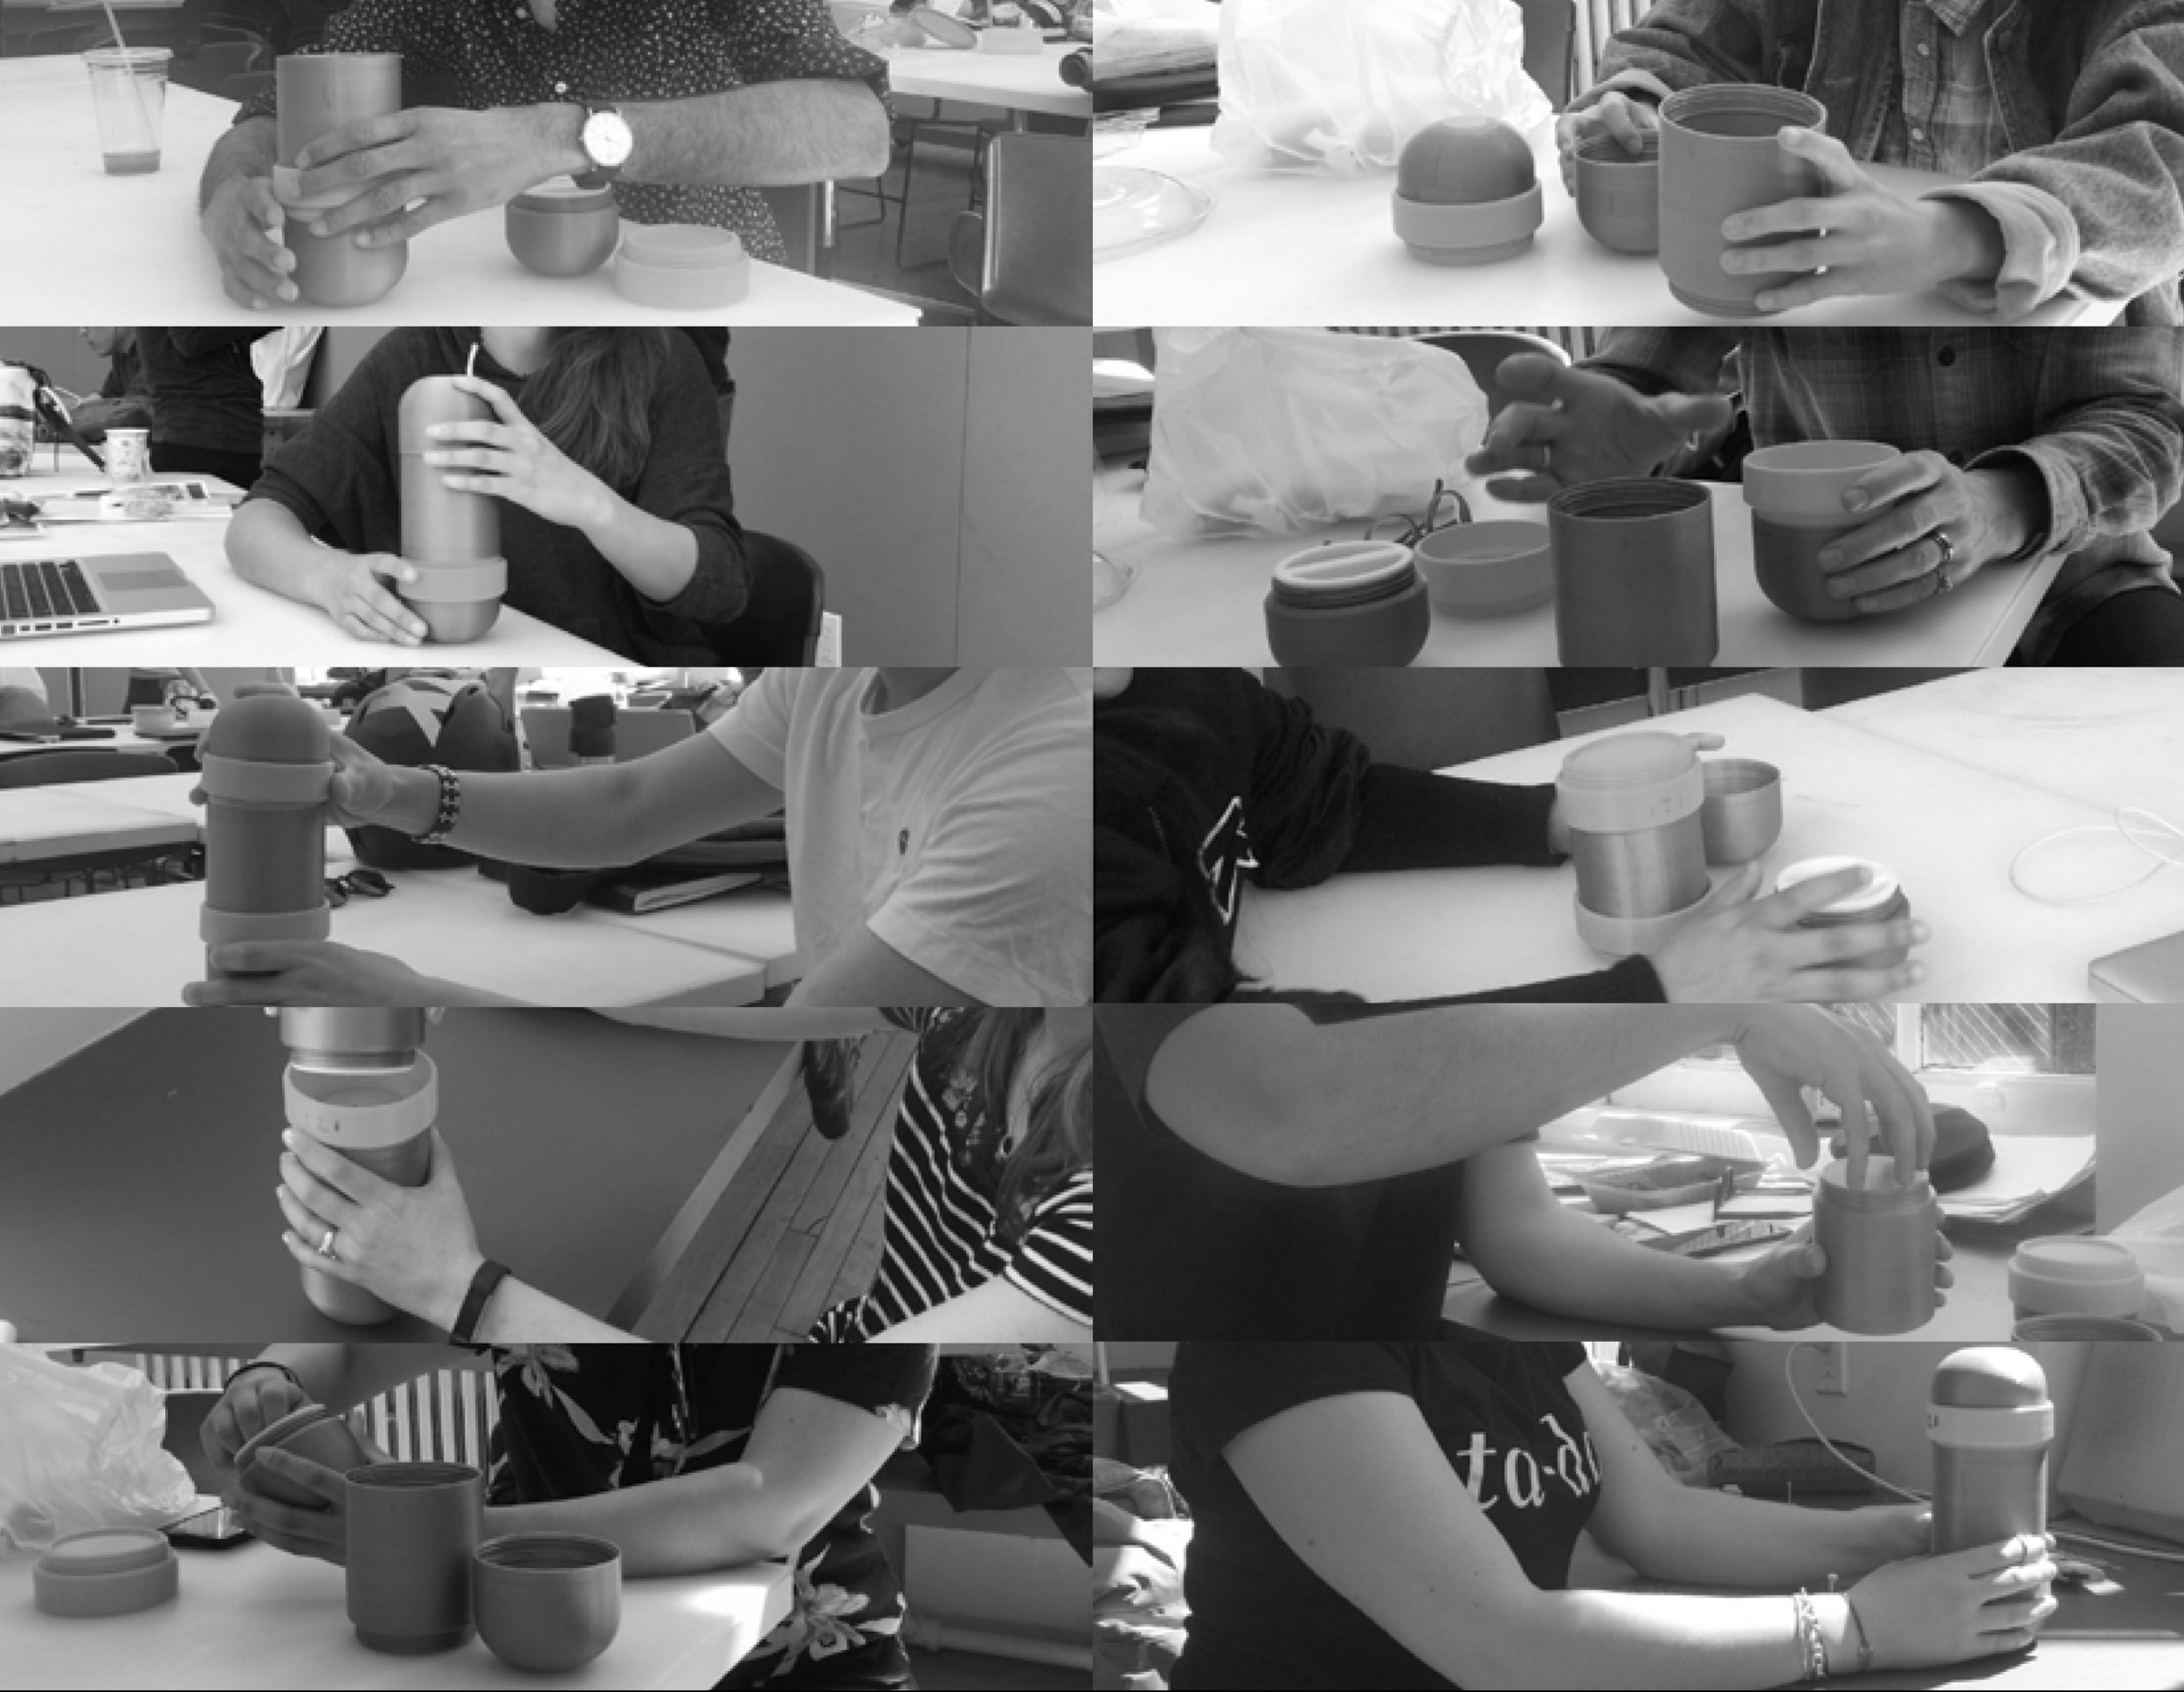 PHOTO STILLS OF USER TESTING WITH OLD 3D PRINTED PROTOTYPES